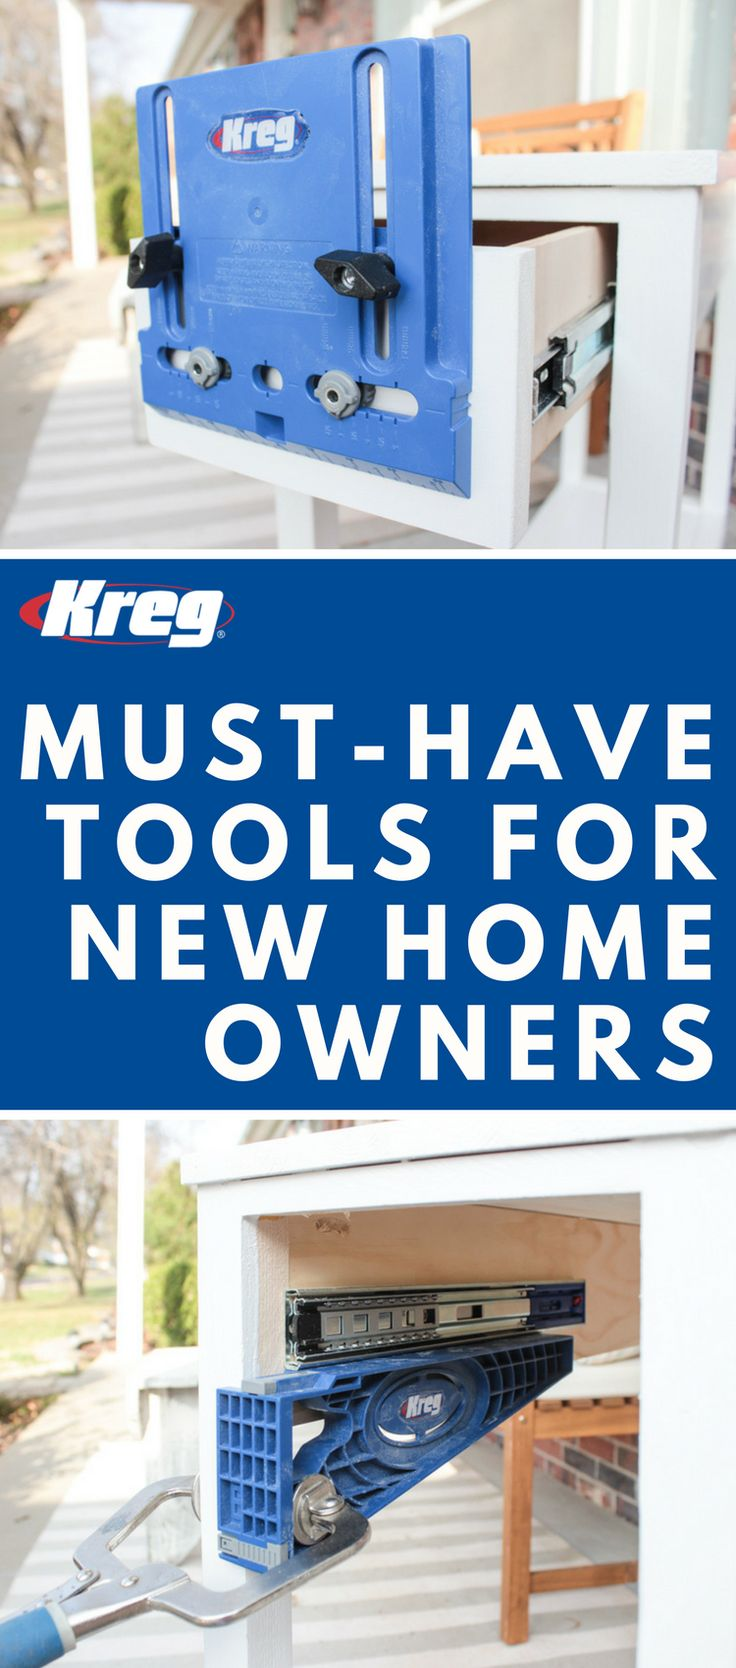 Must-Have Tools for New Homeowners | Kreg Hardware Installation Solutions will help you build the home of your dreams! Confidently install knobs and pulls, concealed door hinges, drawer slides, and adjustable shelves.